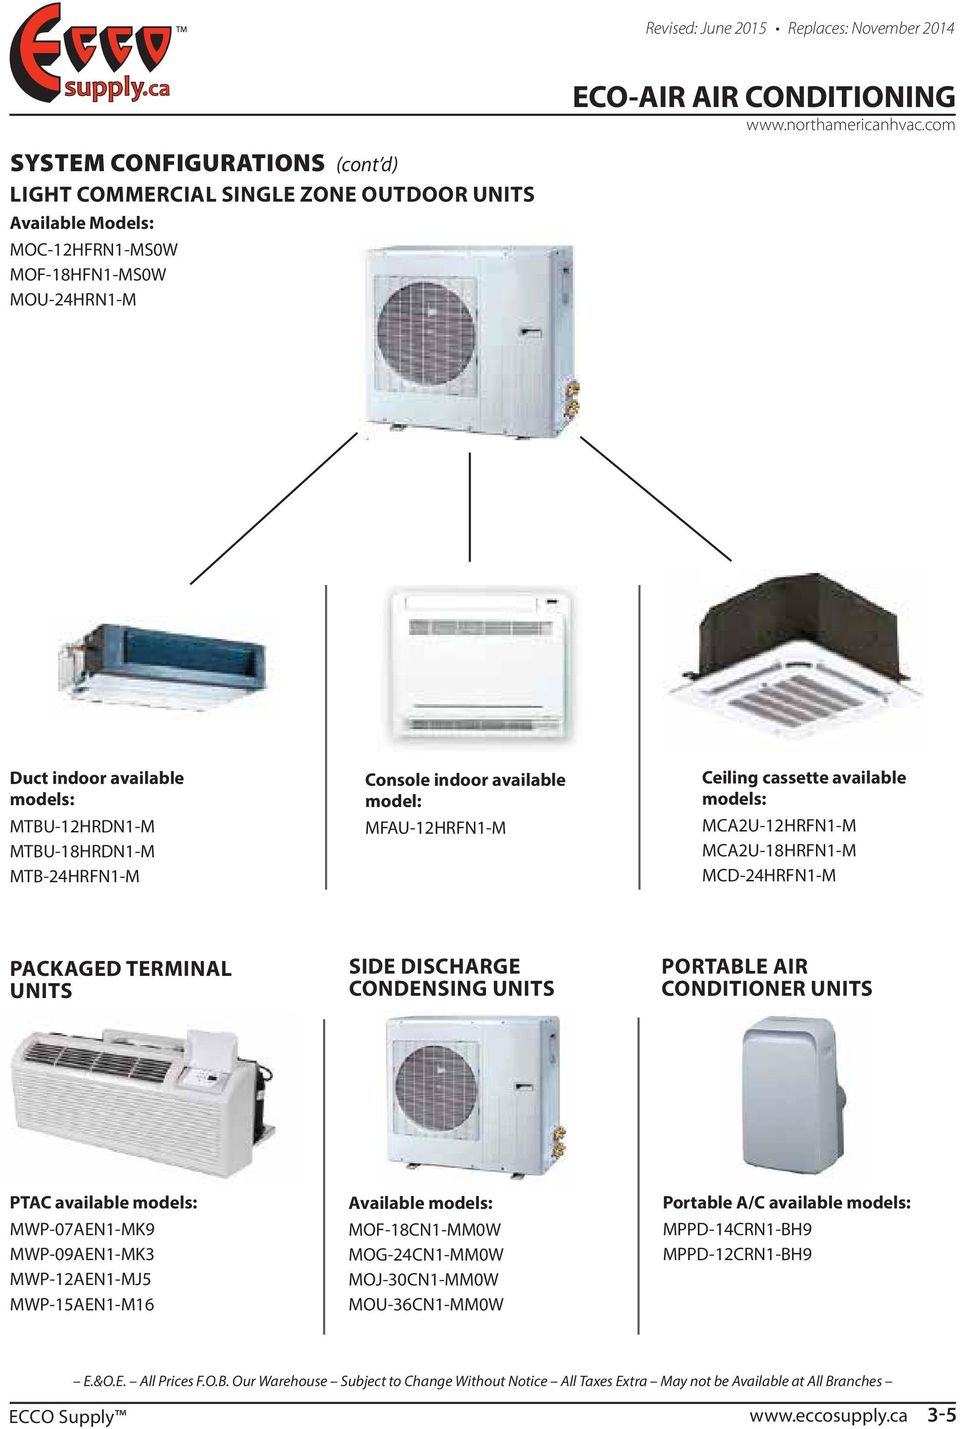 MCD-24HRFN1-M PACKAGED TERMINAL UNITS SIDE DISCHARGE CONDENSING UNITS PORTABLE AIR CONDITIONER UNITS PTAC available MWP-07AEN1-MK9 MWP-09AEN1-MK3 MWP-12AEN1-MJ5